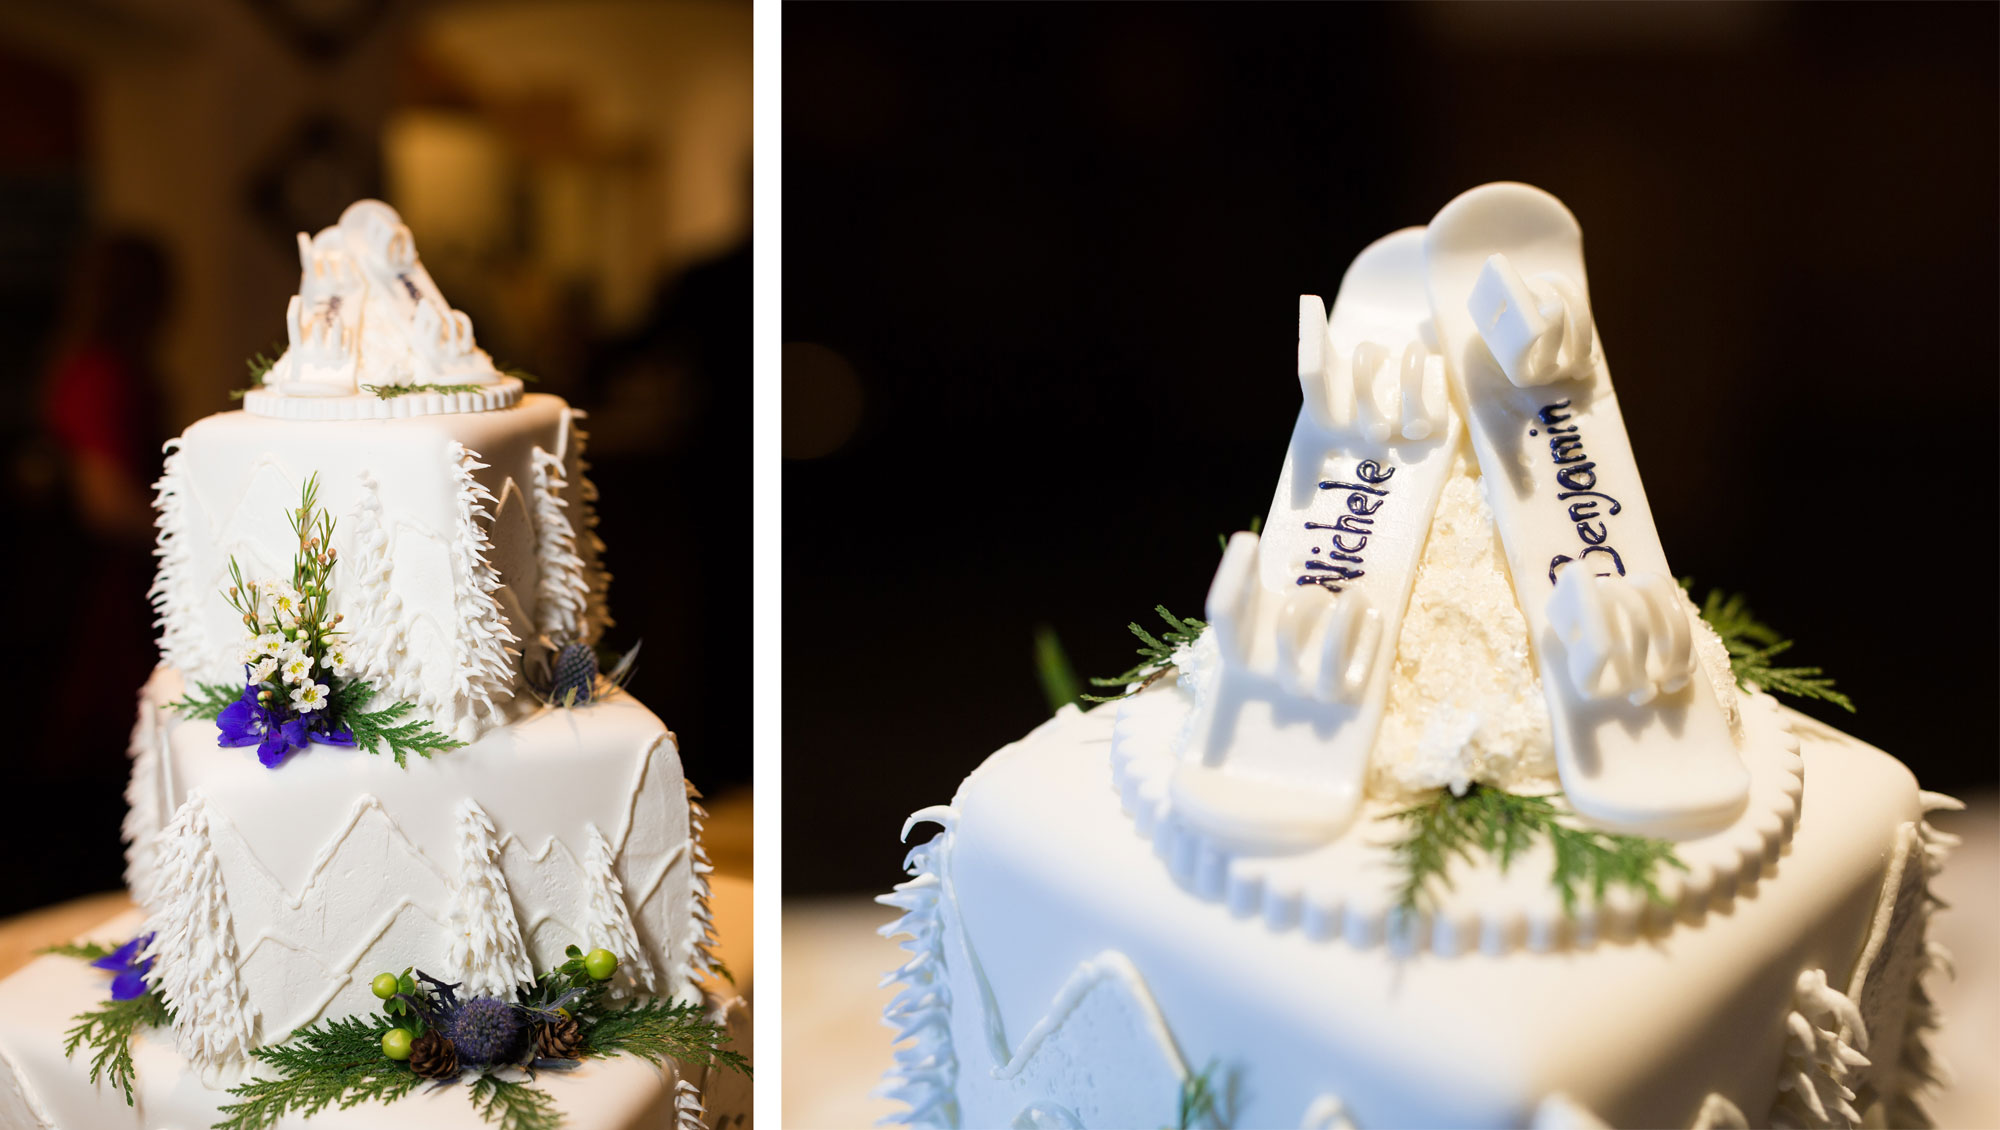 Winter themed cake with snowboards